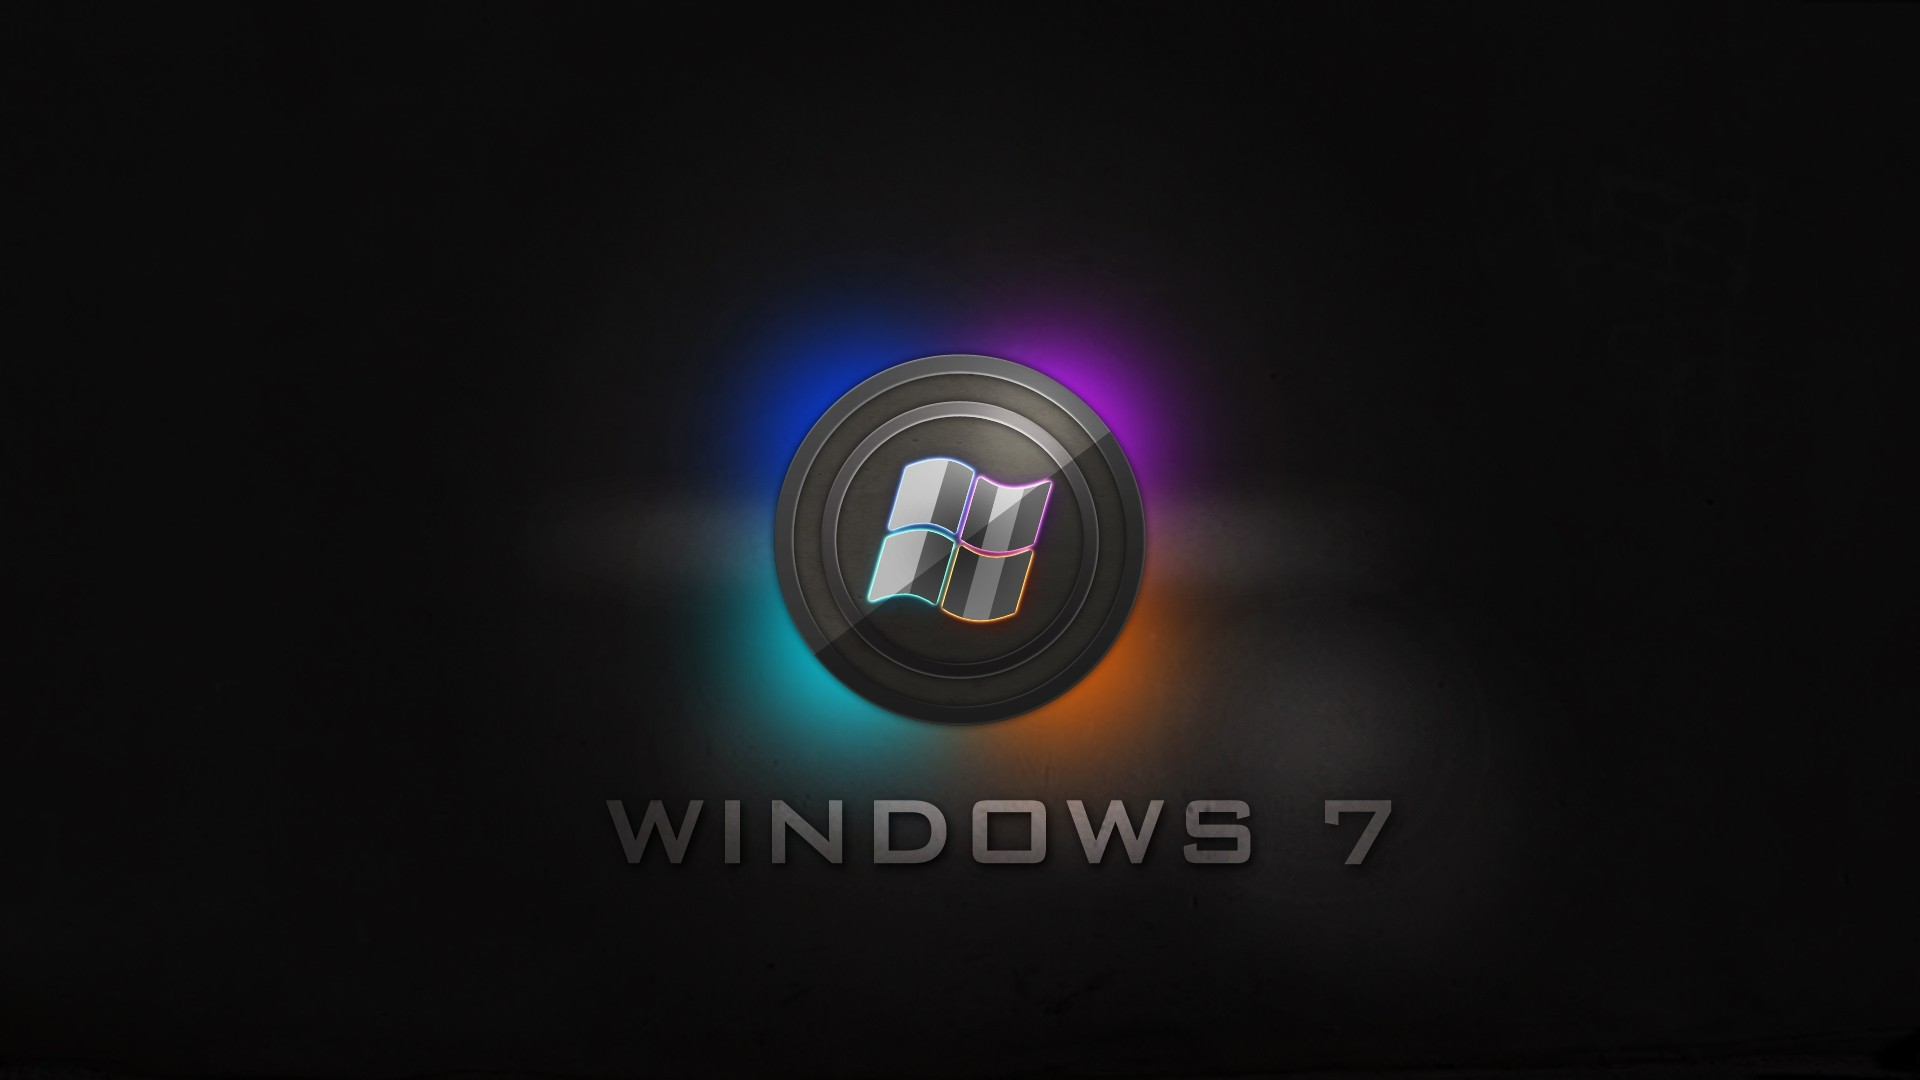 Preview windows 7